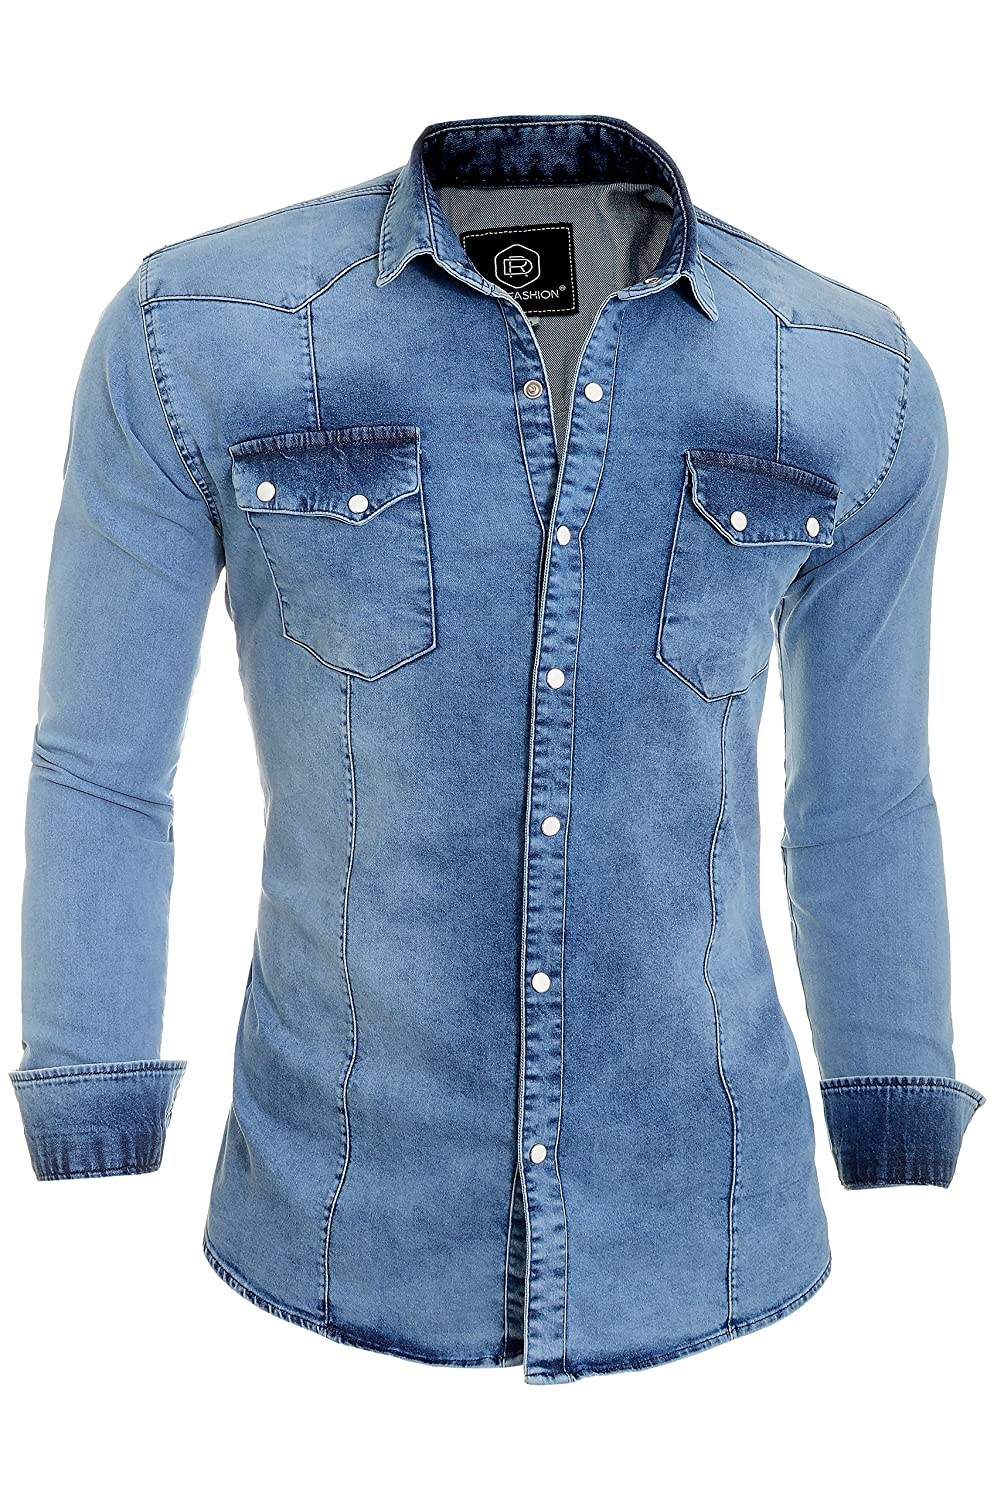 D&R Fashion Camisa Gruesos Denim Jeans Hombres con Collar Normal y Bolsillos Elegantes